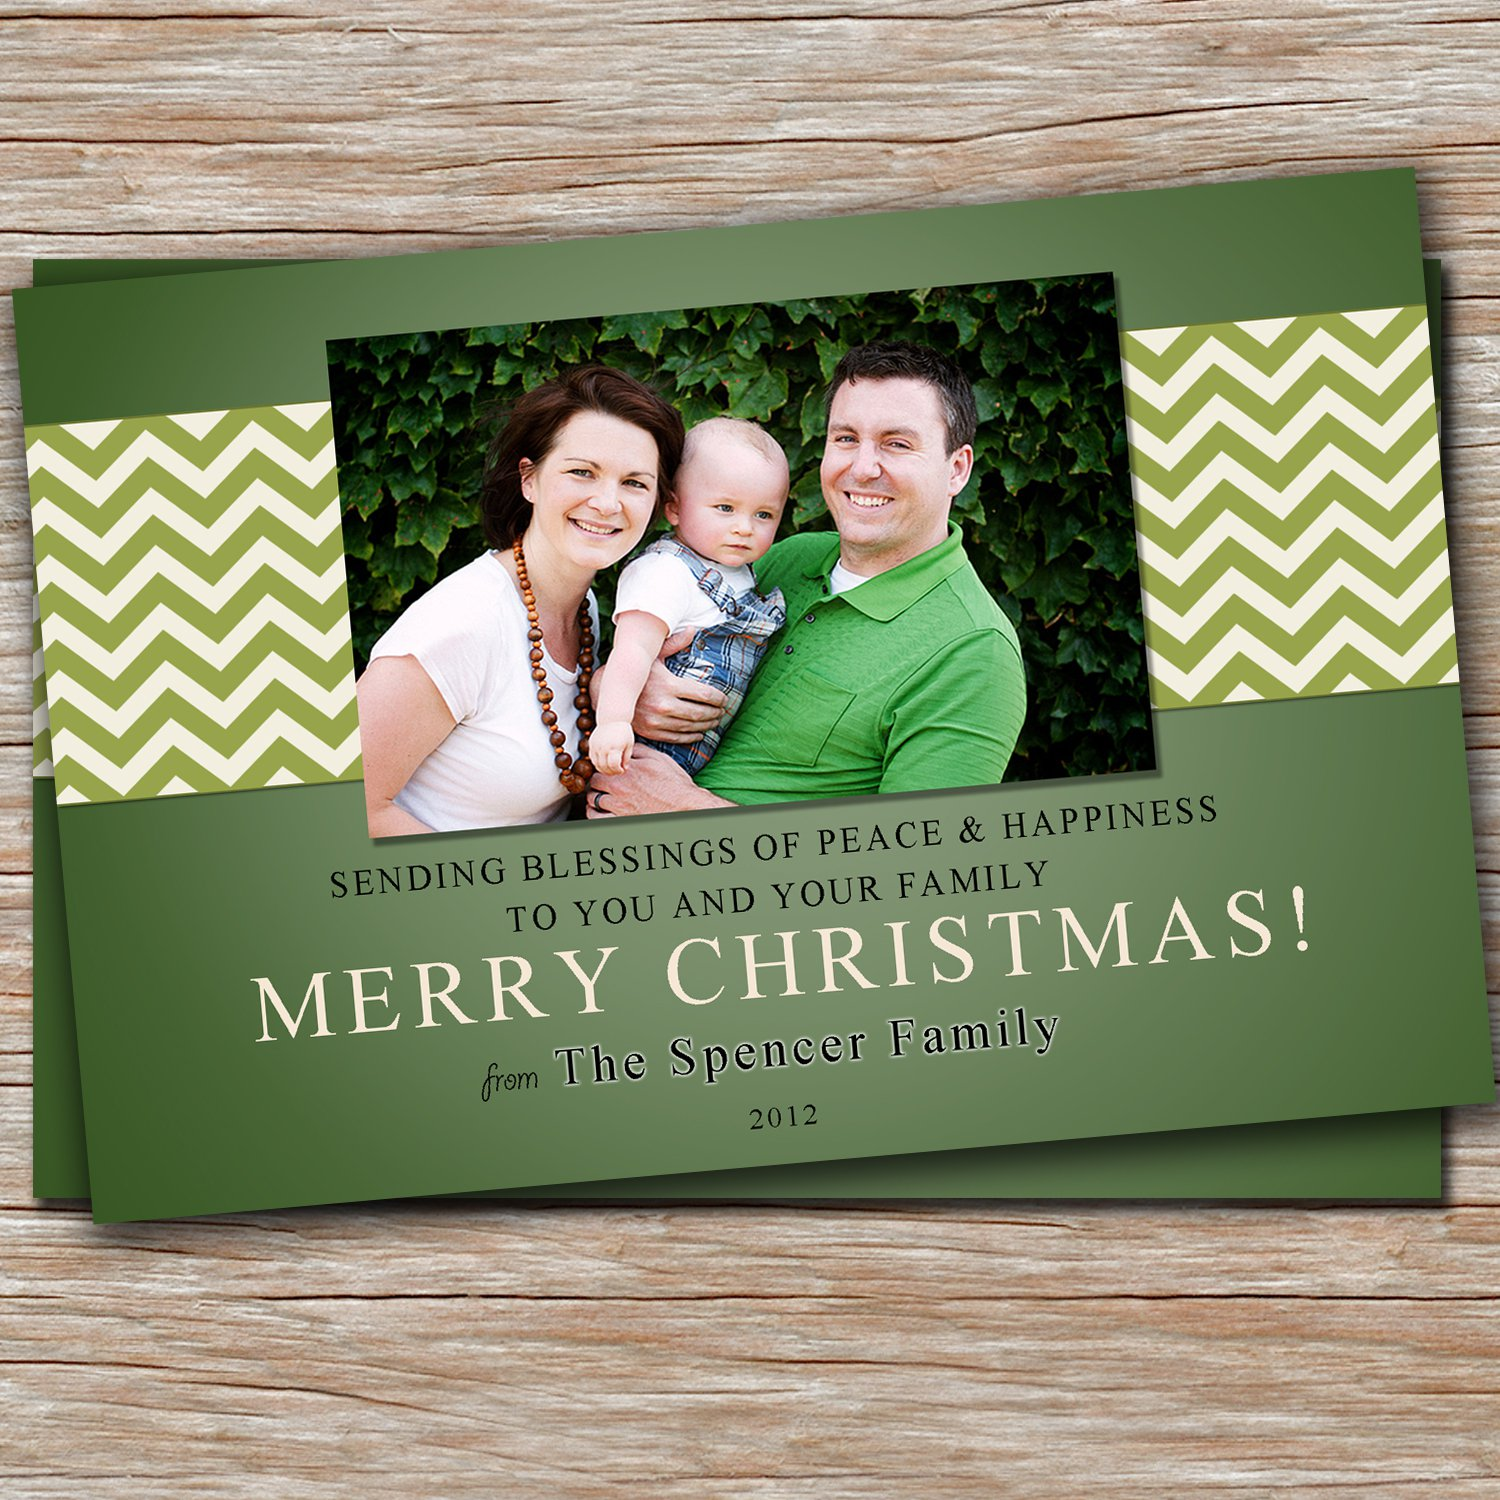 Buy personalized e greeting cards - 30 Personalized Holiday Greeting Photo Card - Custom Chevron Green